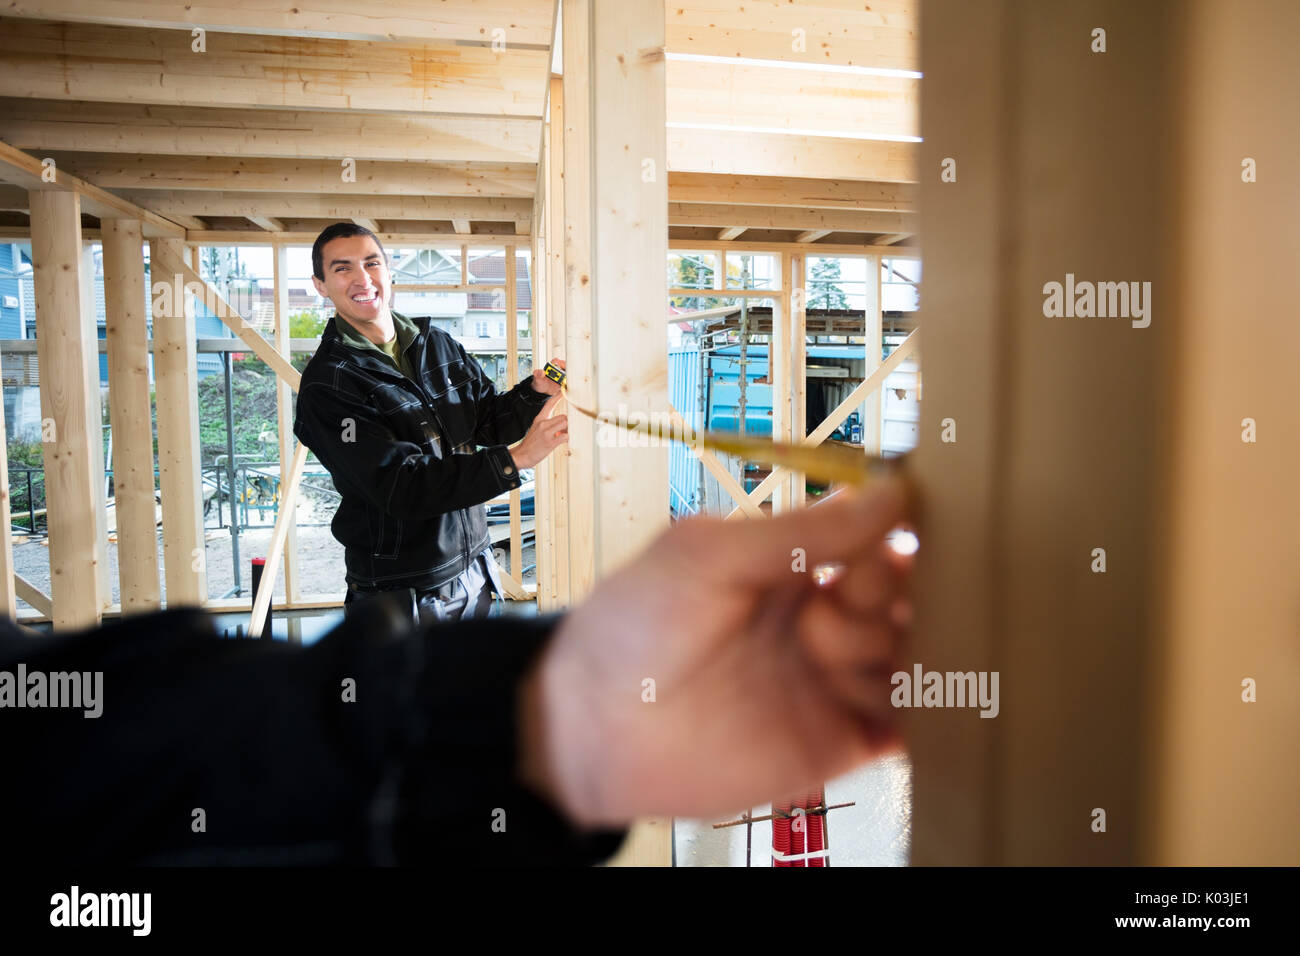 Happy Carpenter Measuring Wood With Help Of Colleague At Site - Stock Image